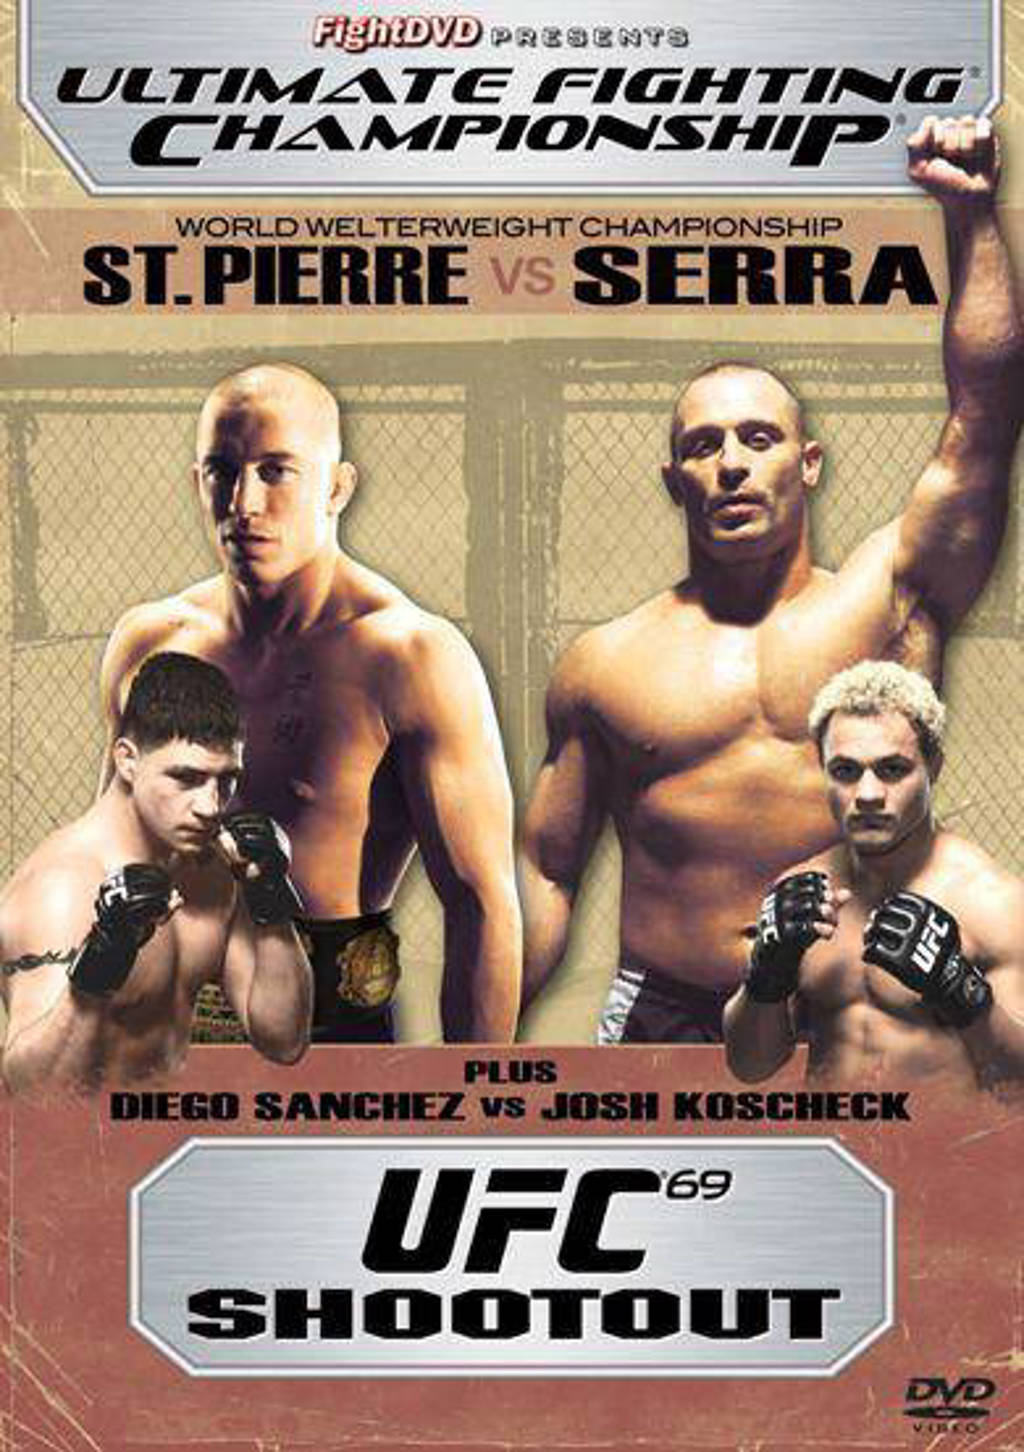 UFC-UFC 69 schoot out (DVD)